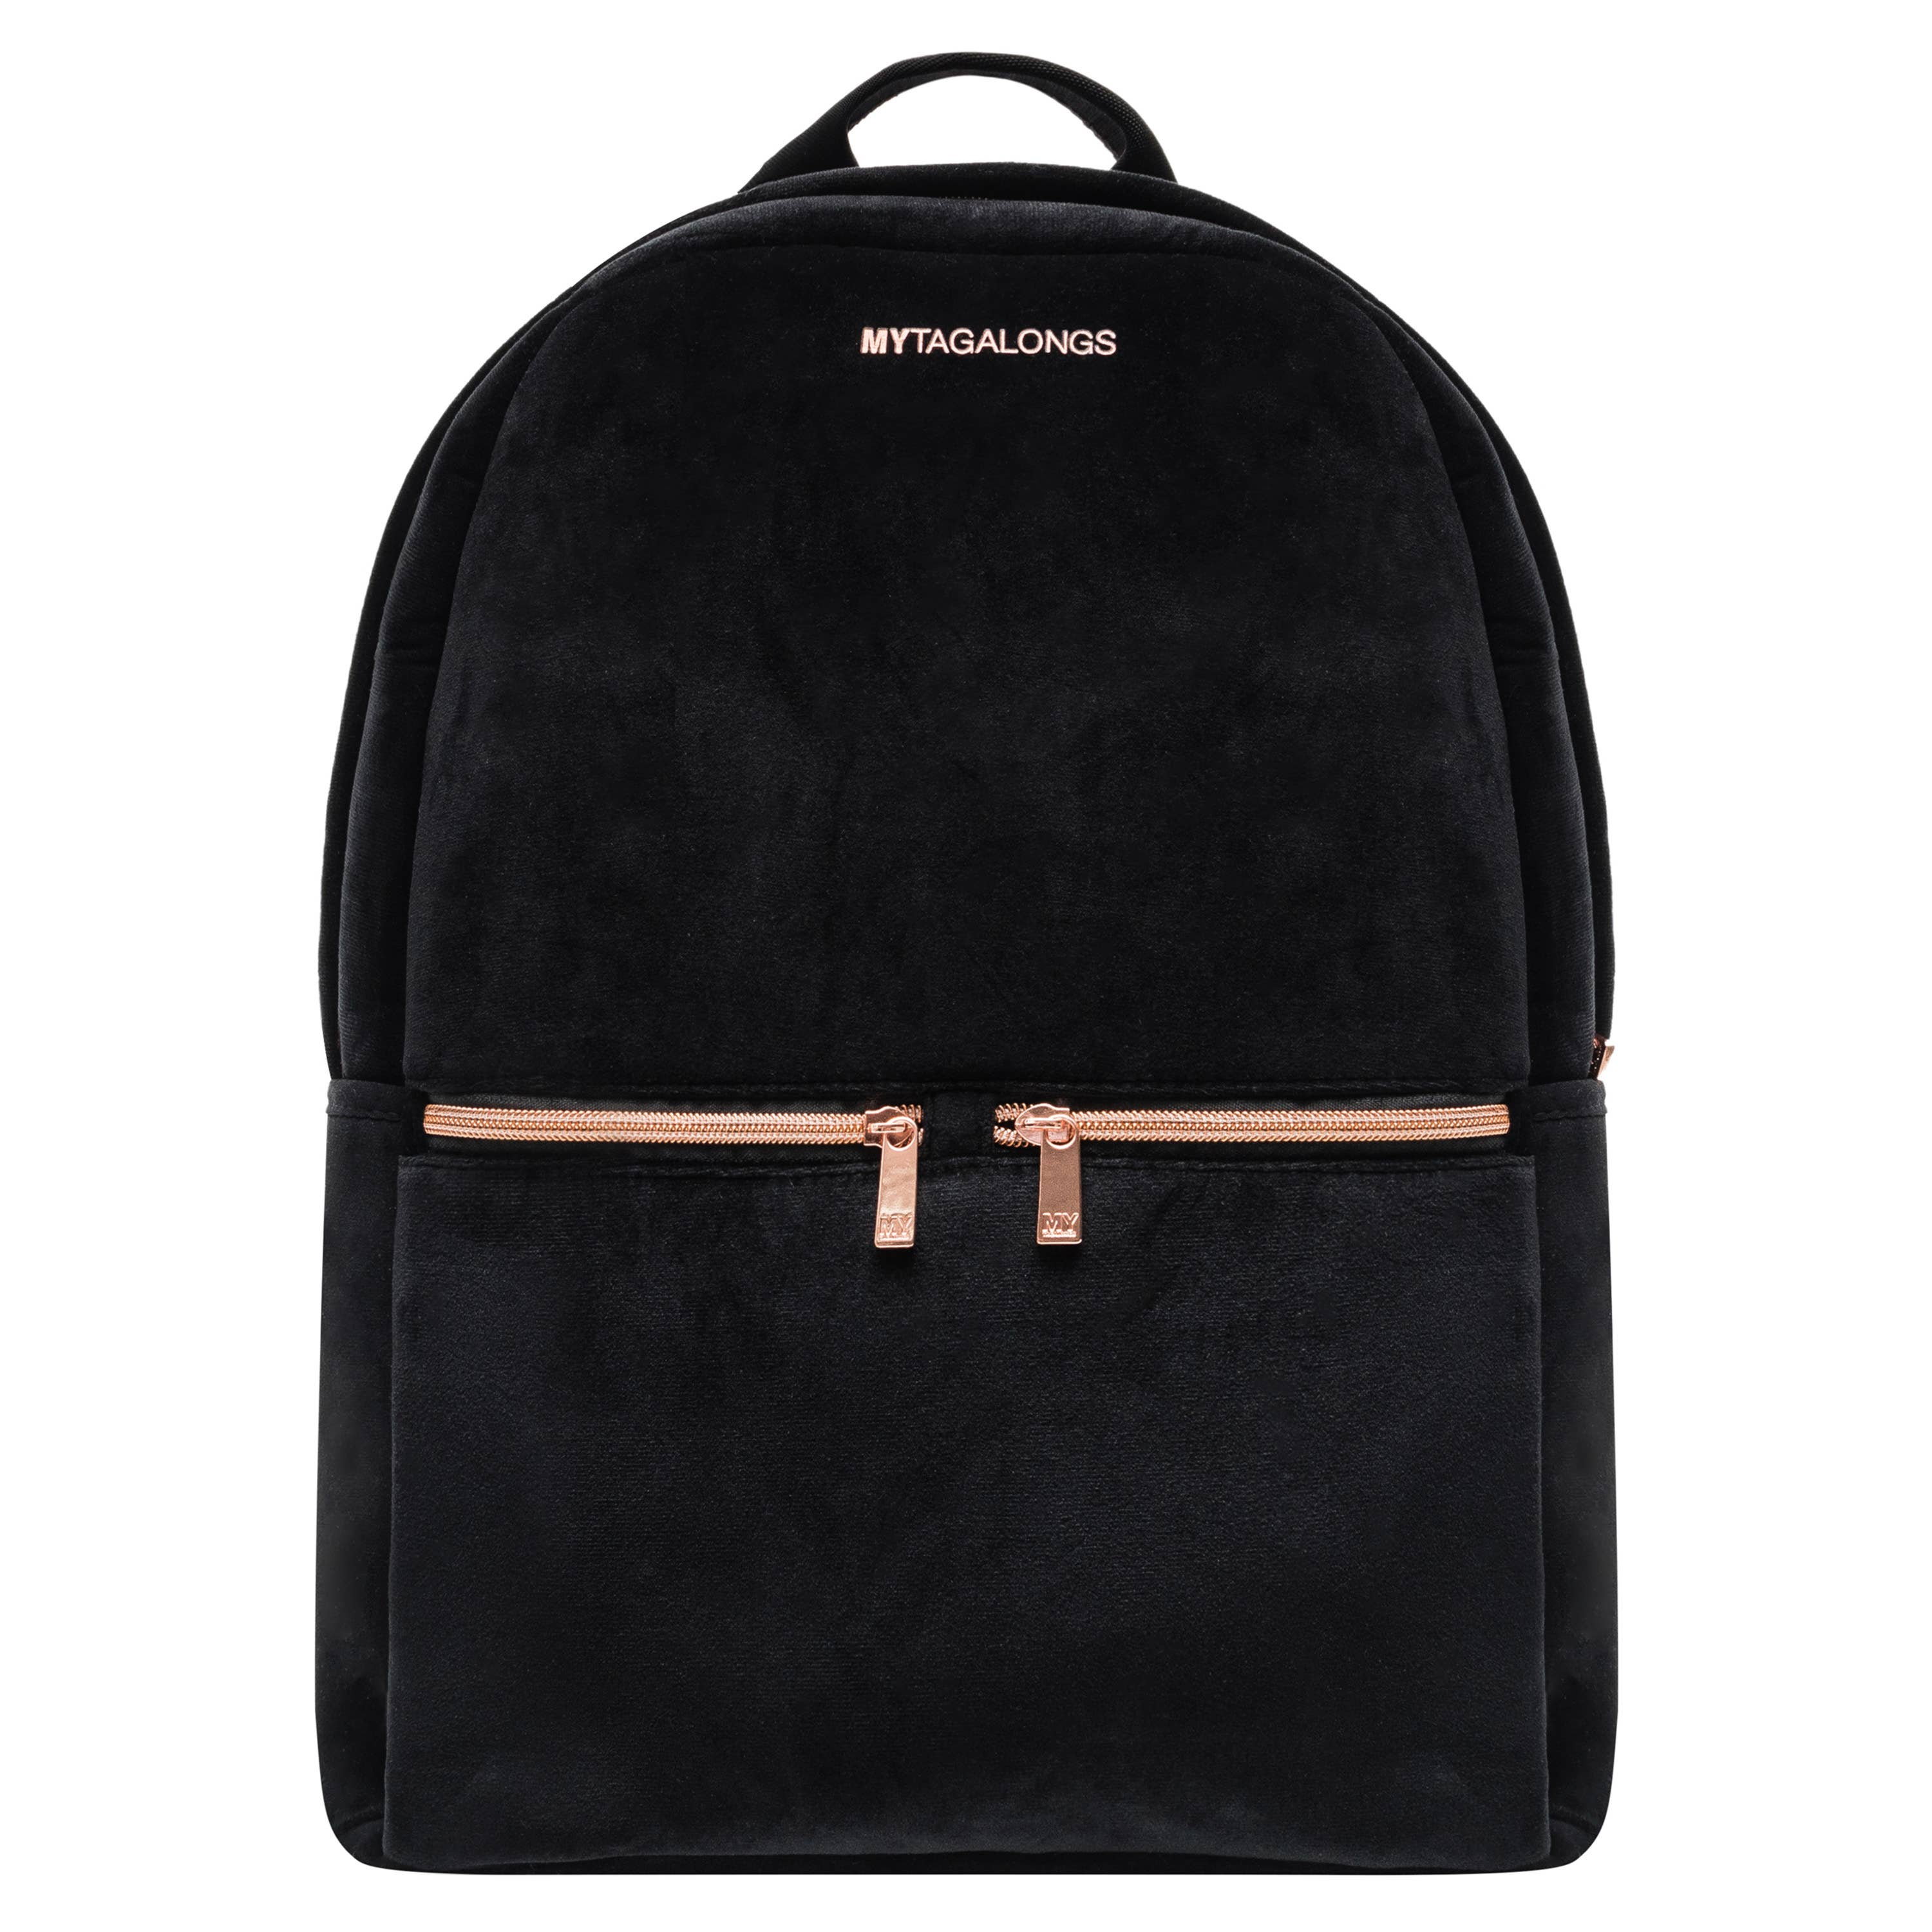 Backpack - Vixen Black